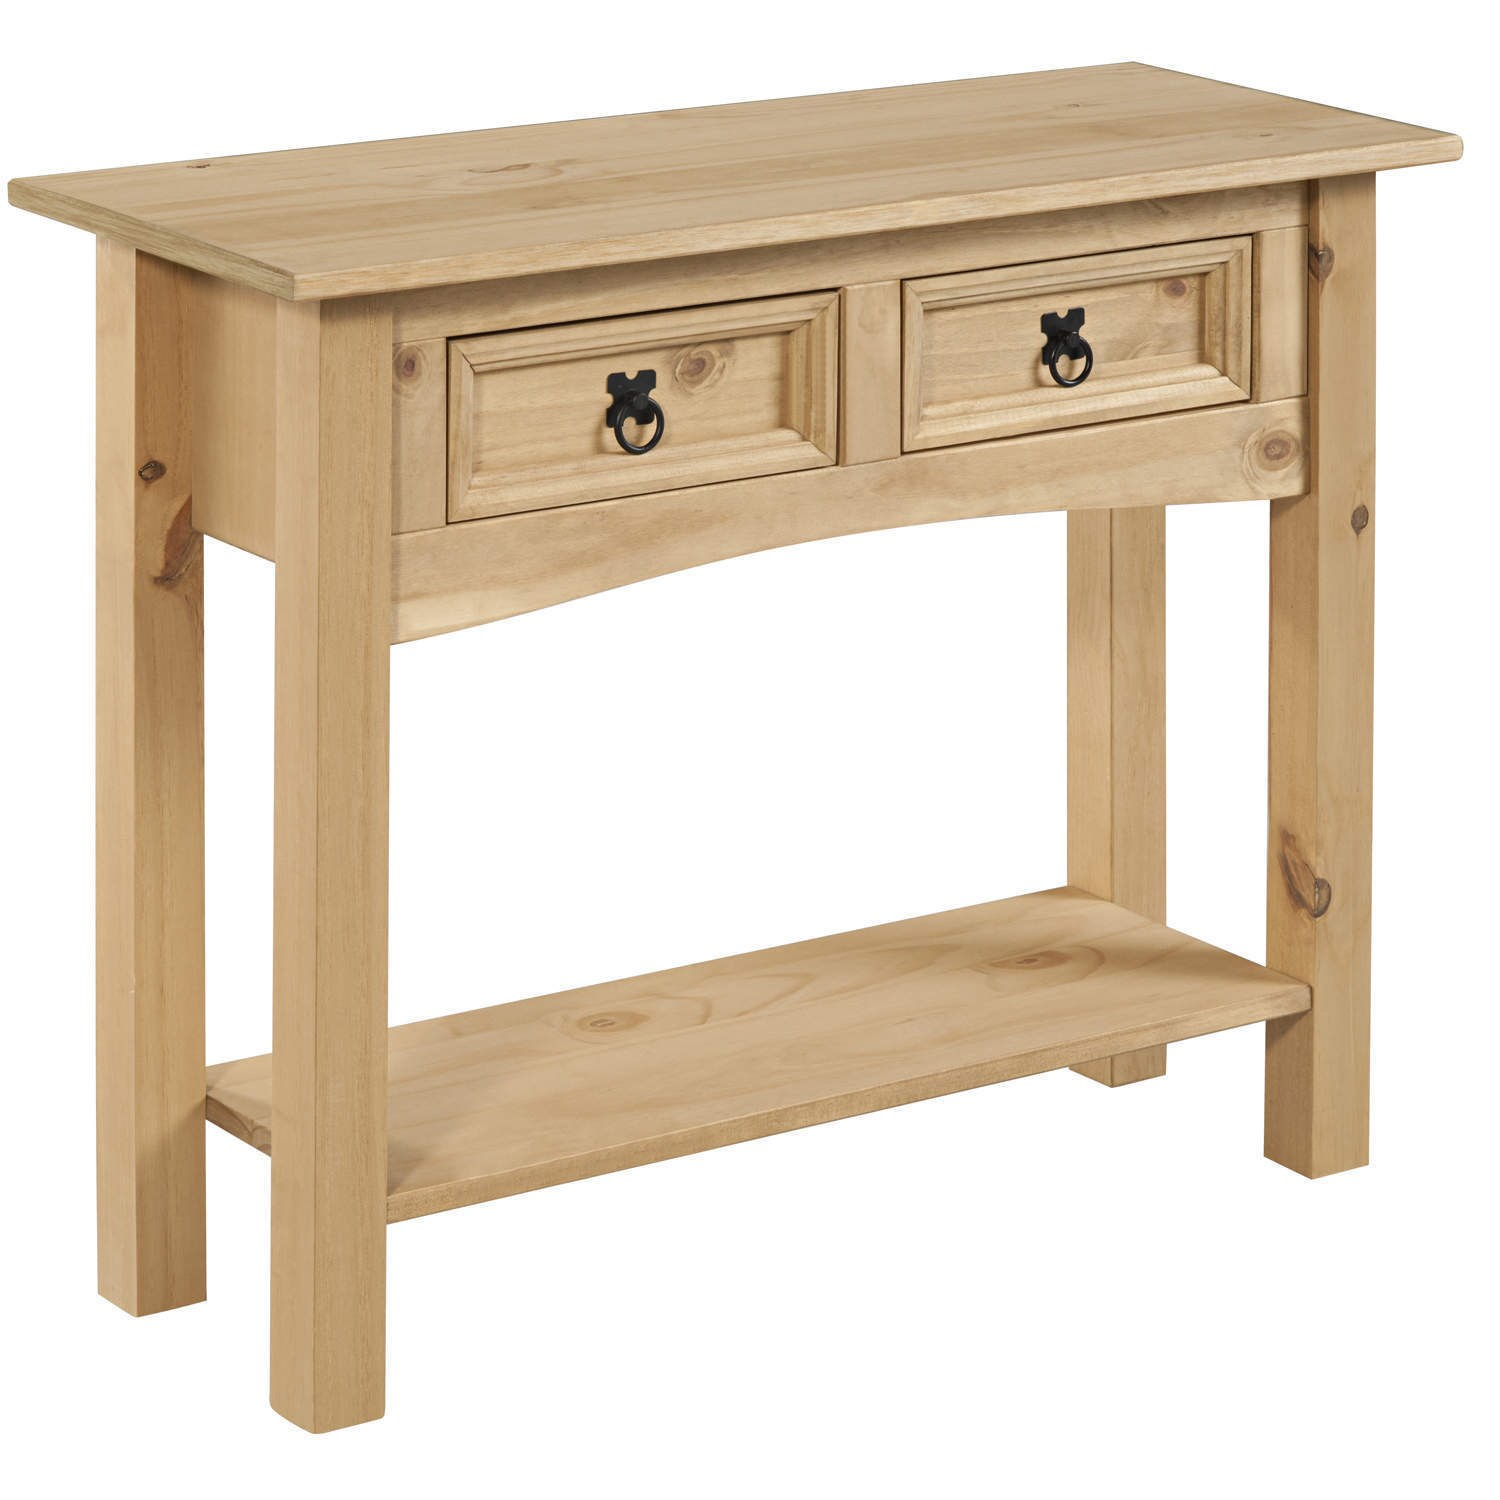 Corona solid pine 2 drawer console table with shelf cor027 ebay - Pine sofa table with drawers ...